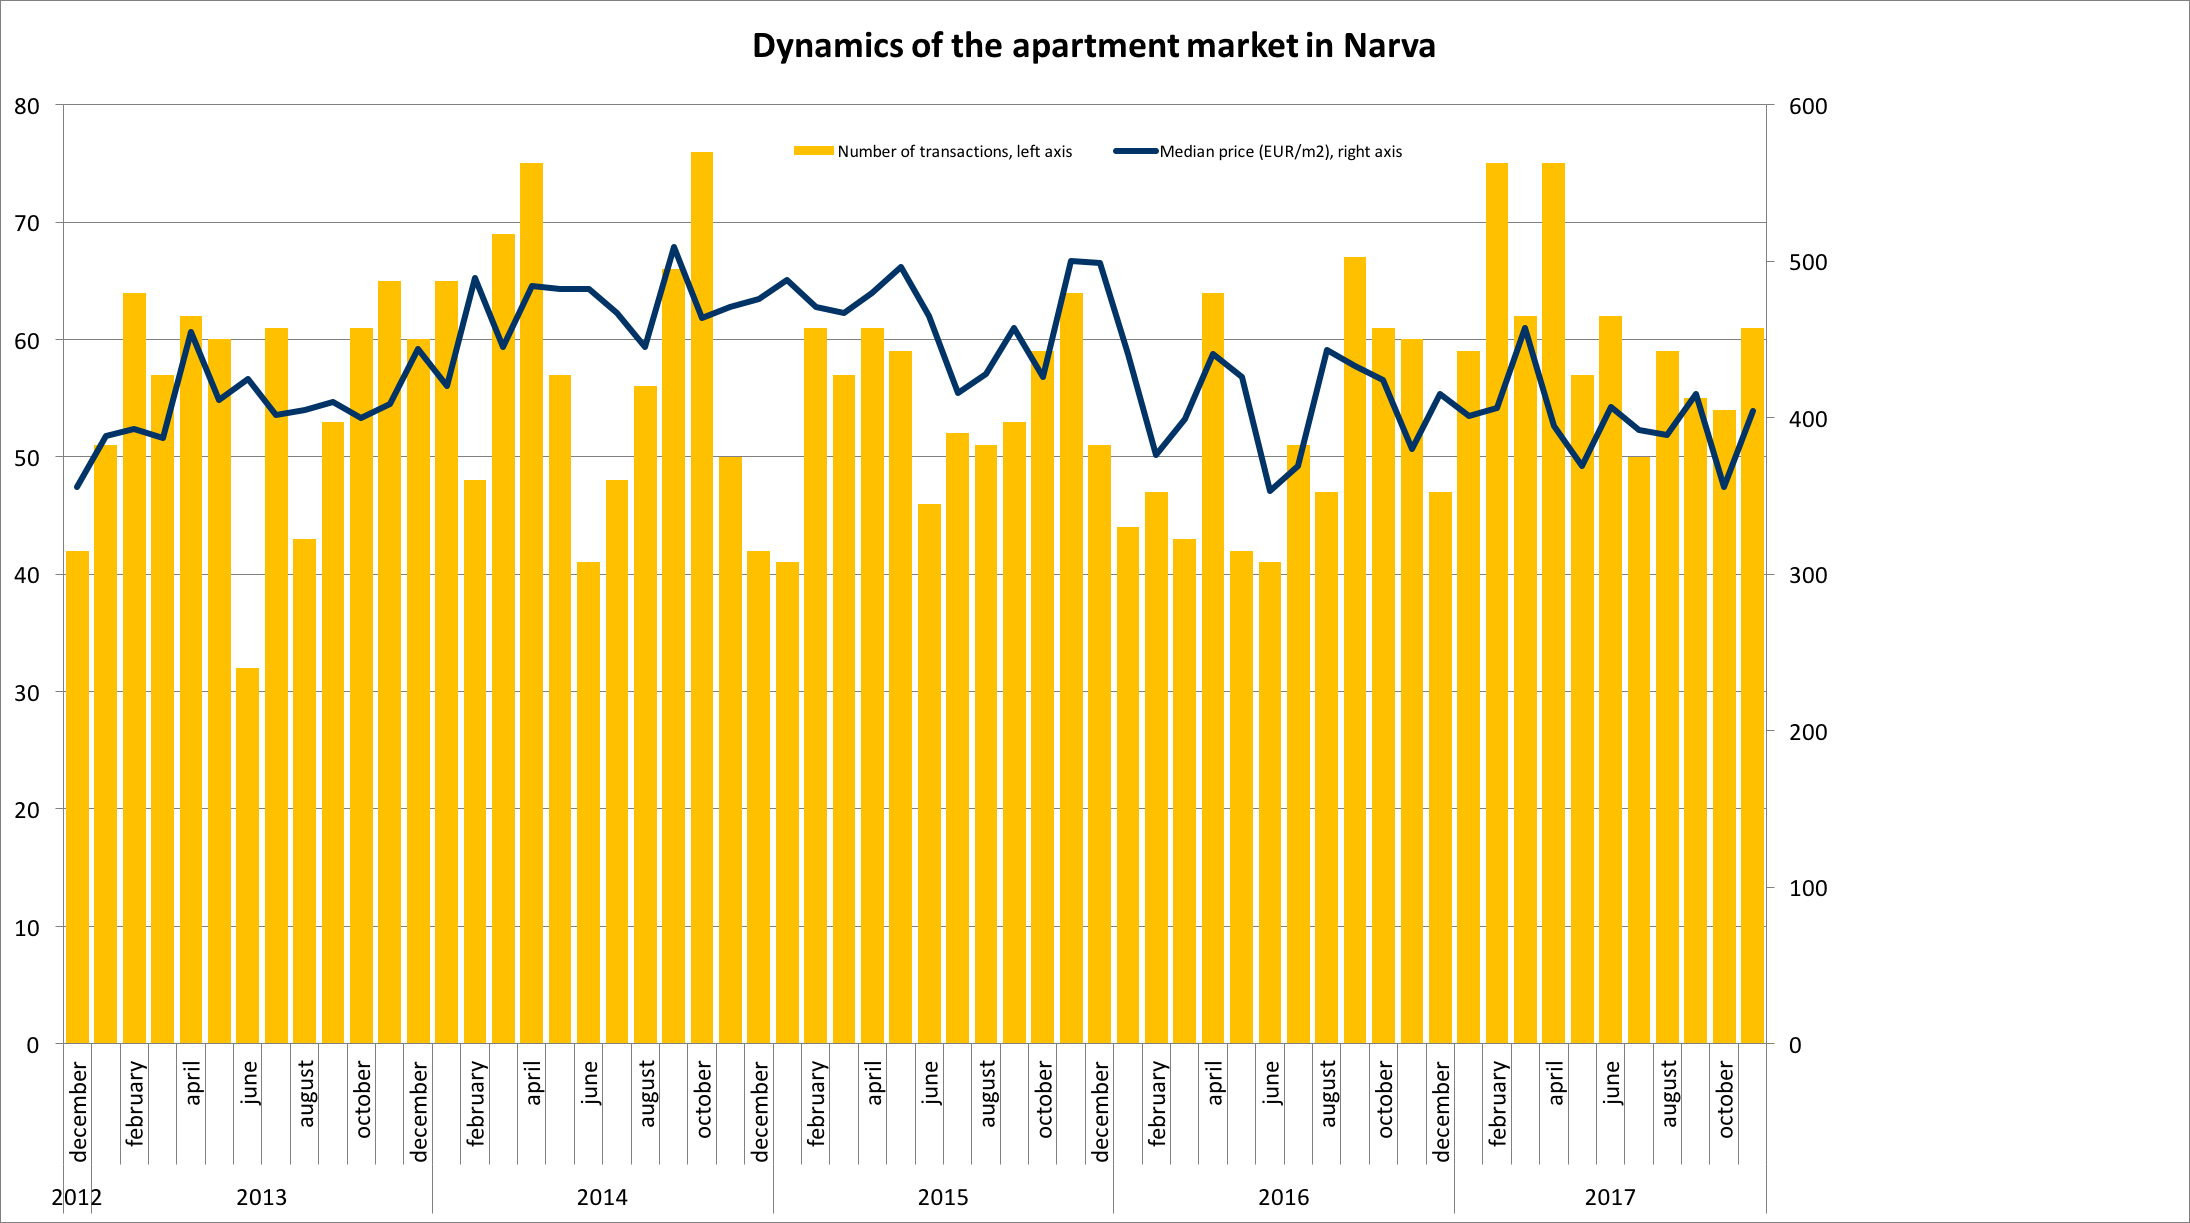 171218 Dynamics of the apartment market in Narva